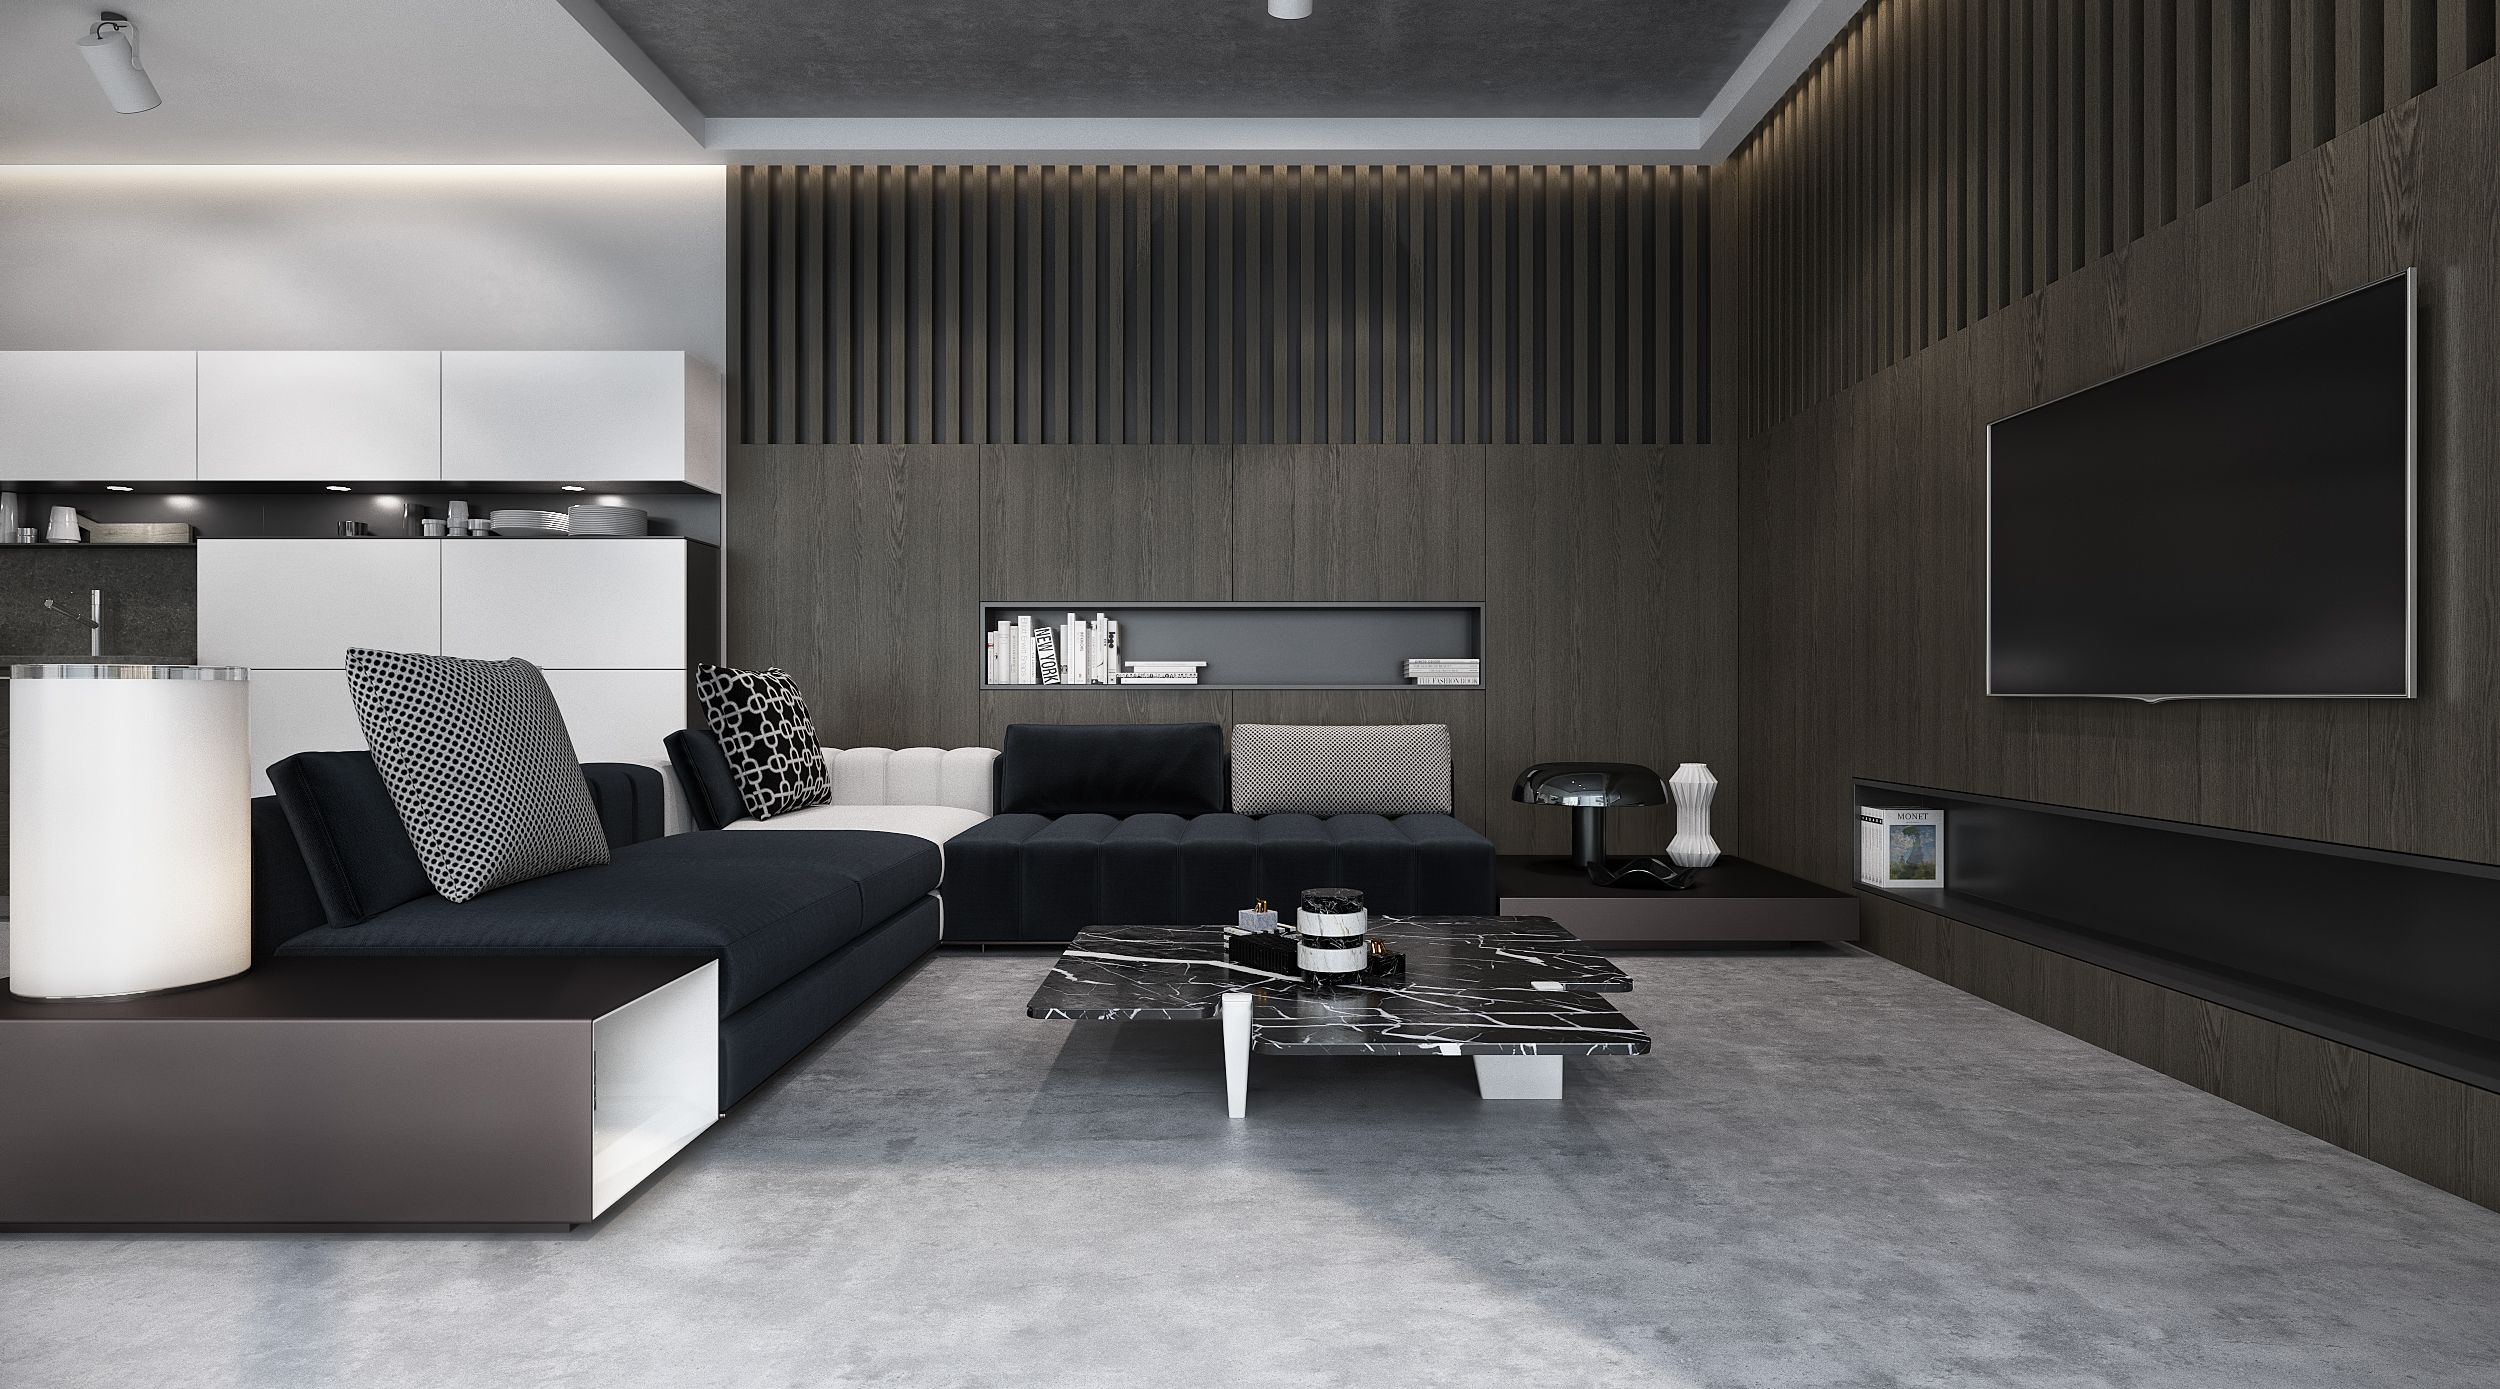 Interior Living Room Private Villa By Sarah Sadeq Architects  # Gianotti Muebles